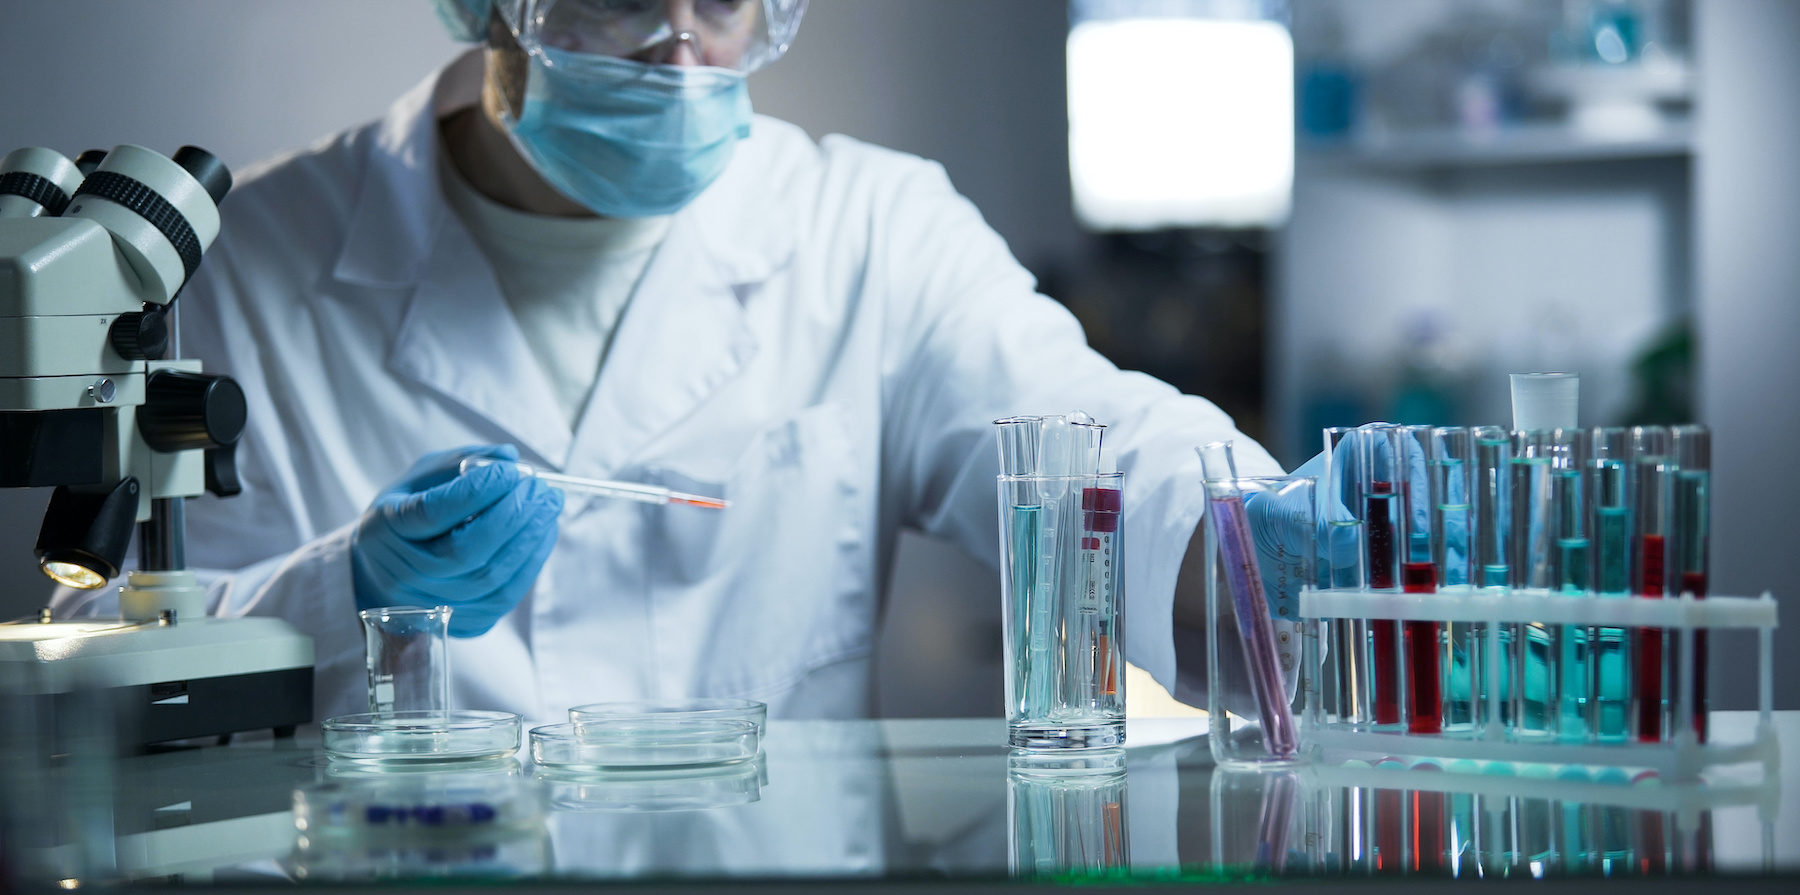 Medical lab assistant taking genetic material for examination